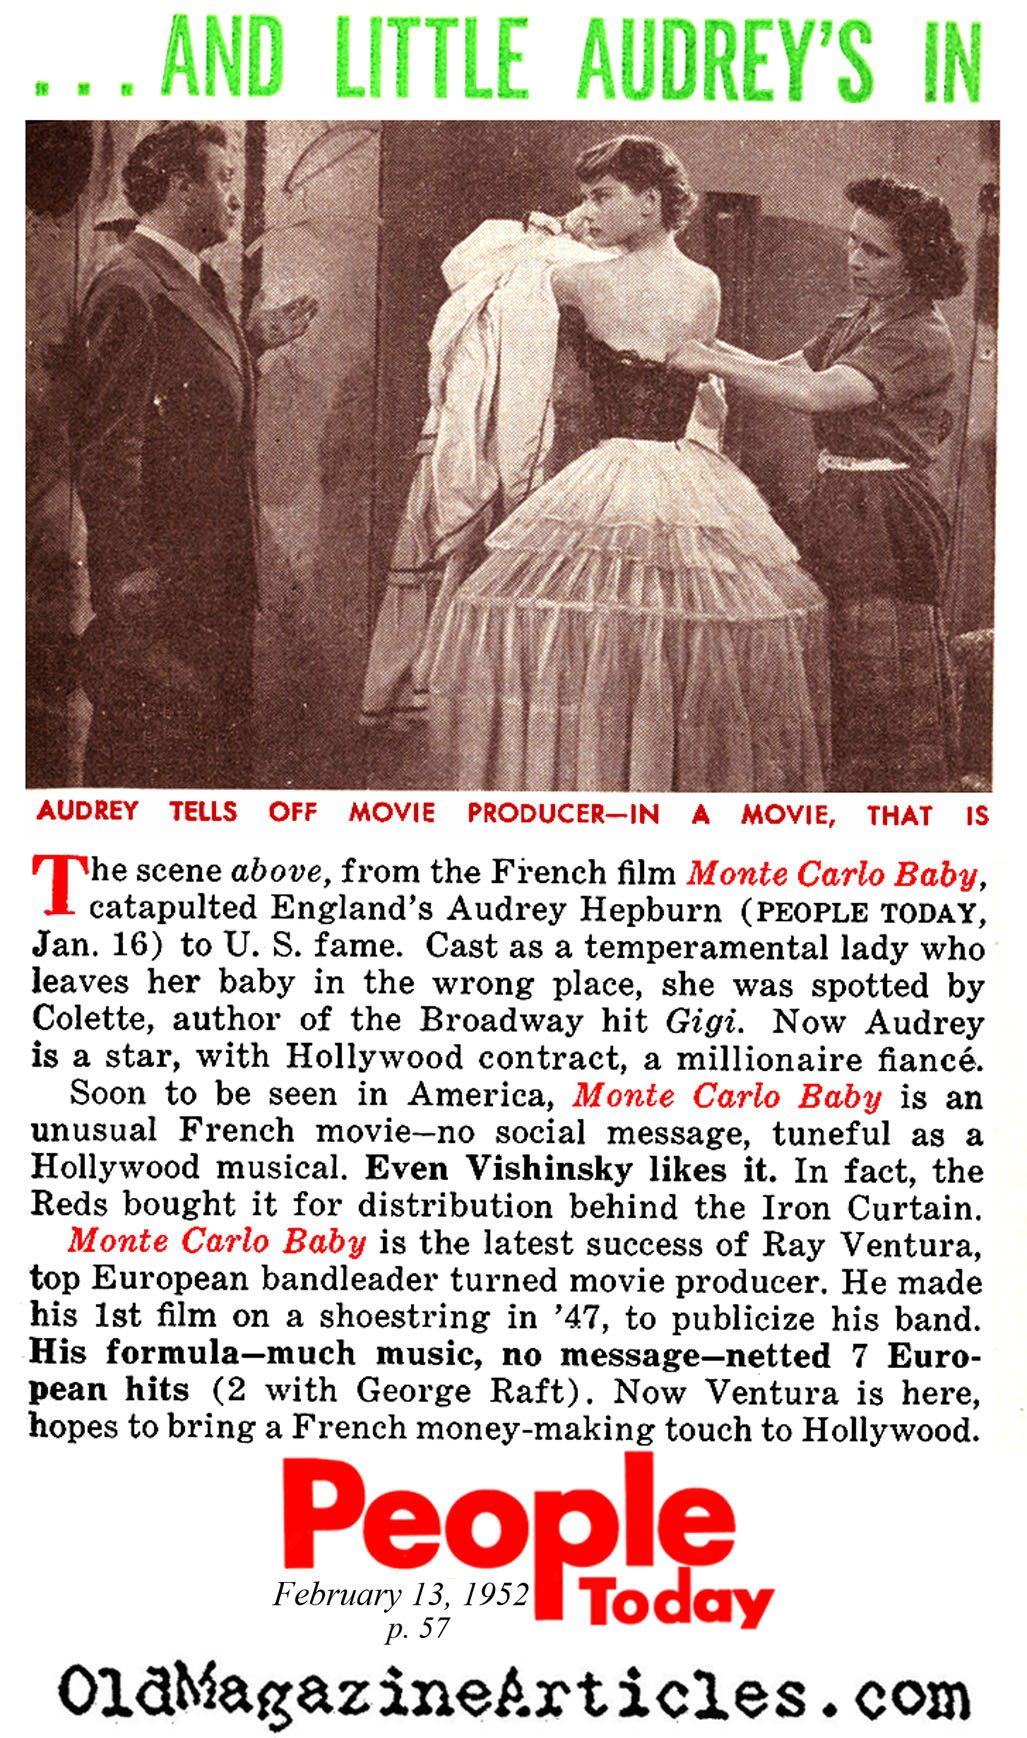 The Discovery of Audrey Hepburn (People Today, 1952)